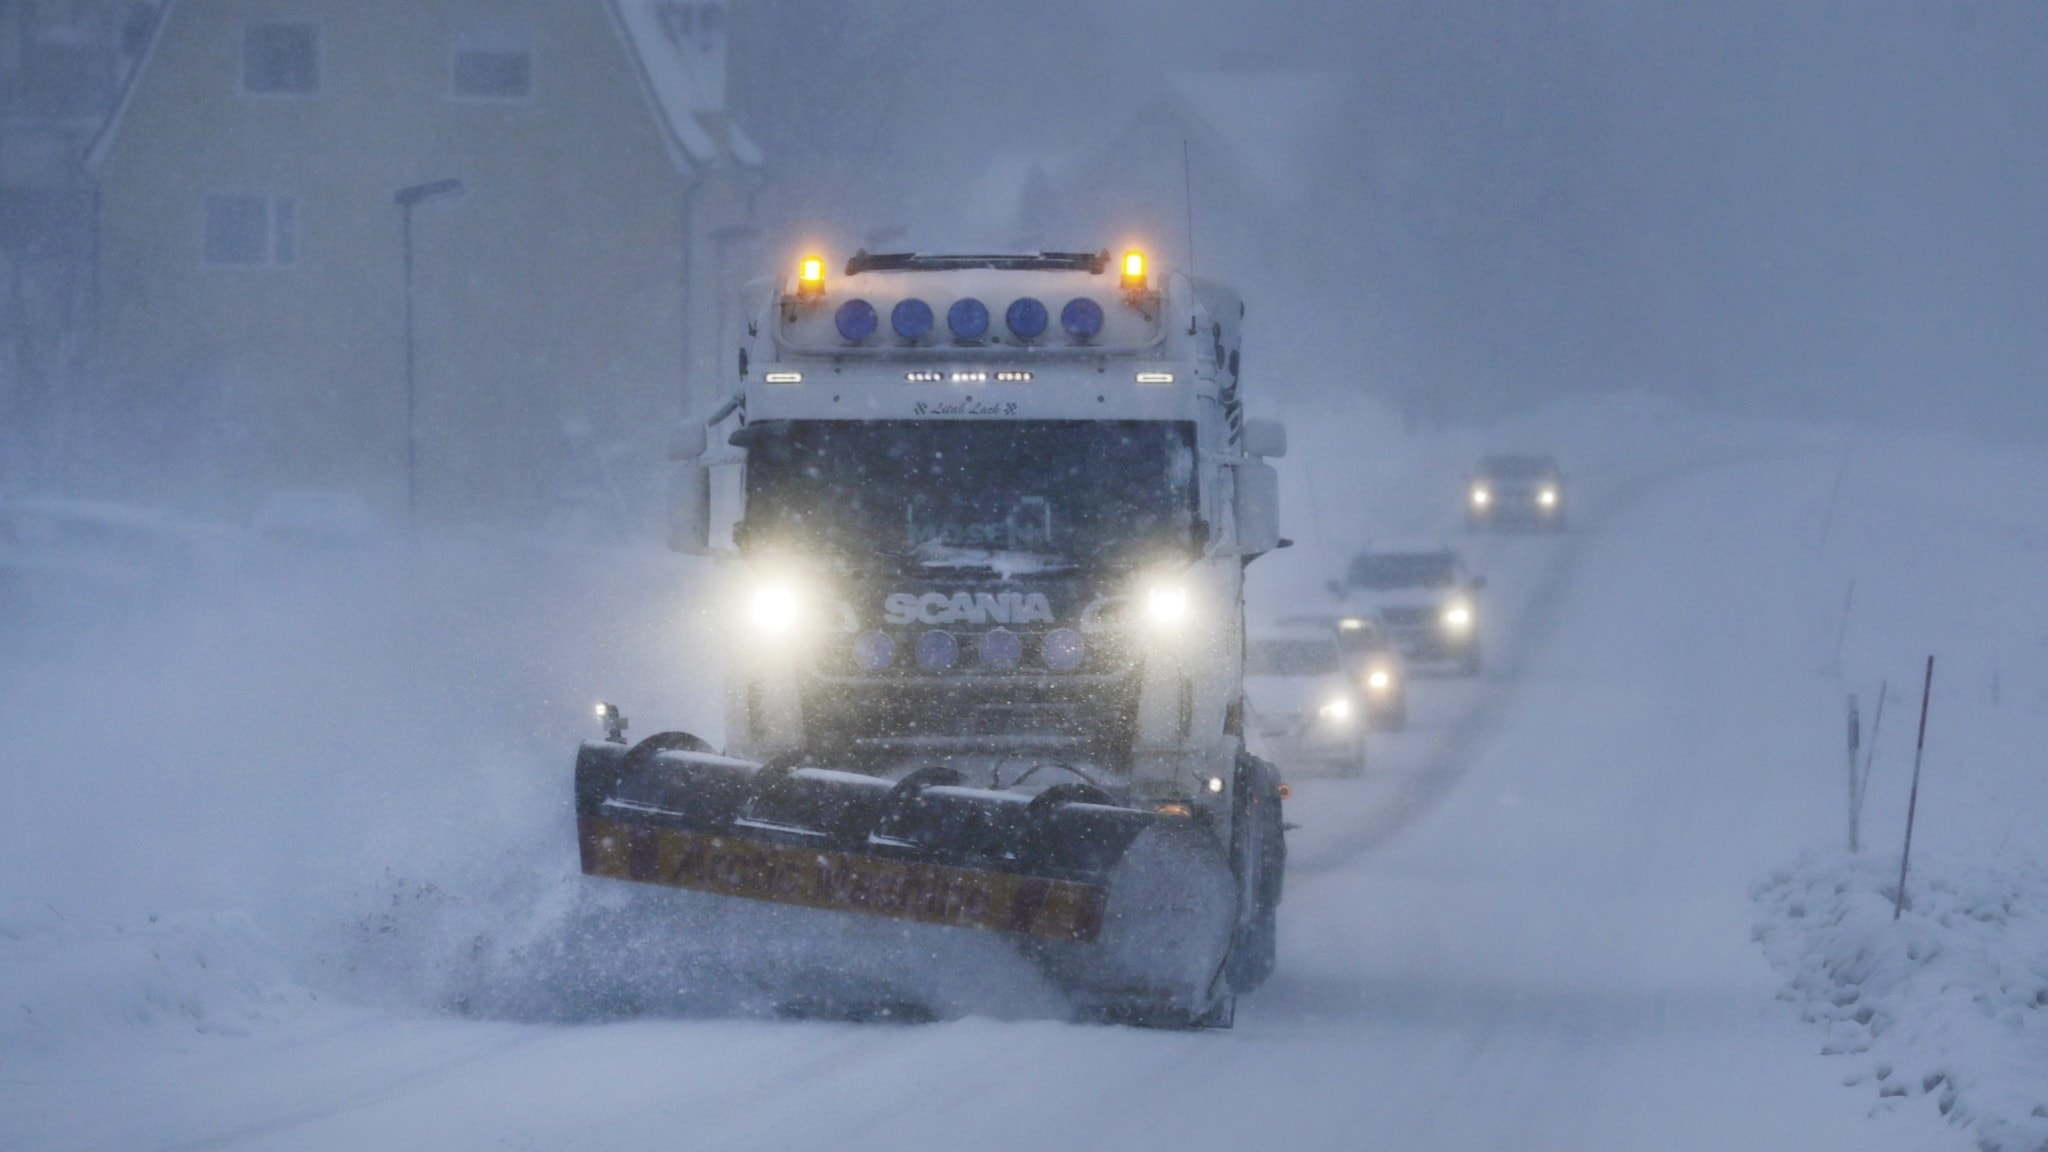 A large snow plough clearing a road with a line of cars behind it.